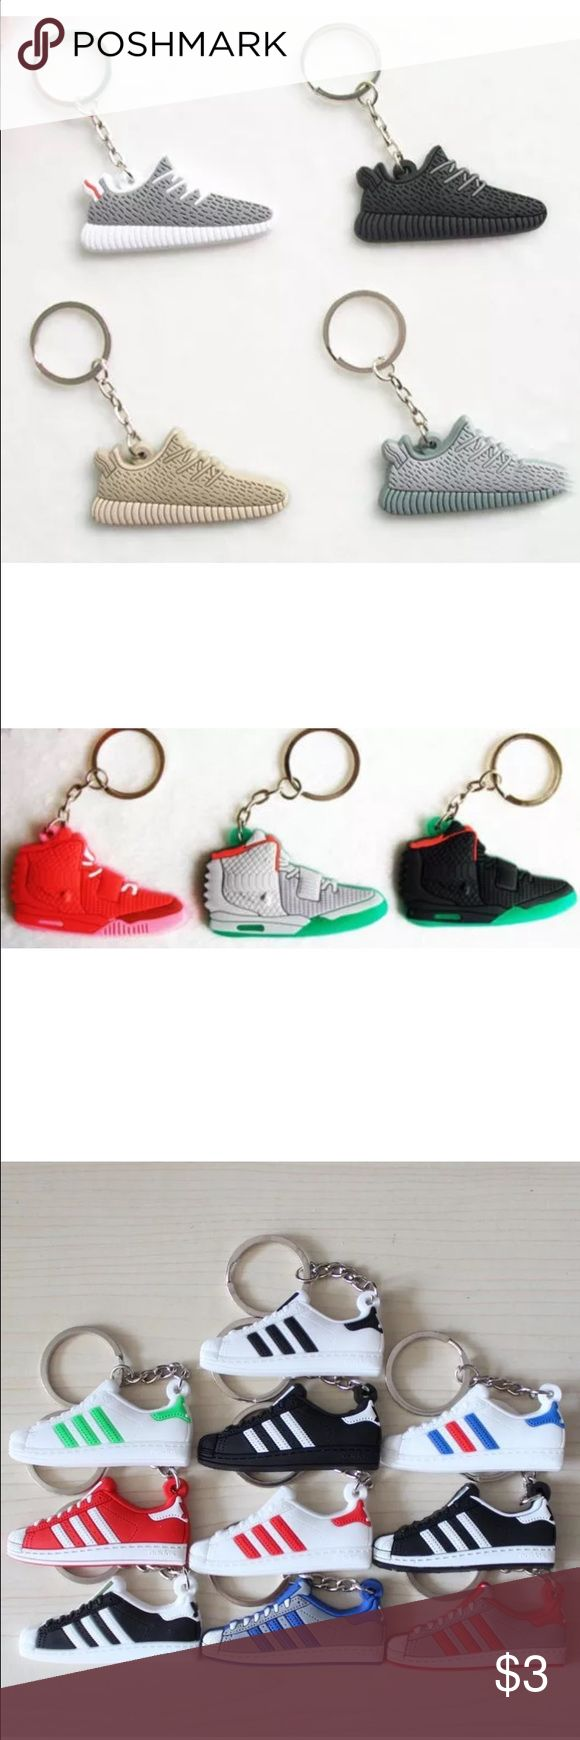 Keychains Nike, Adidas and Kanye West Yeesy If You are interested please let me know I'm taking order's right know just for the lowest price of $3 each  Shoes Sneakers